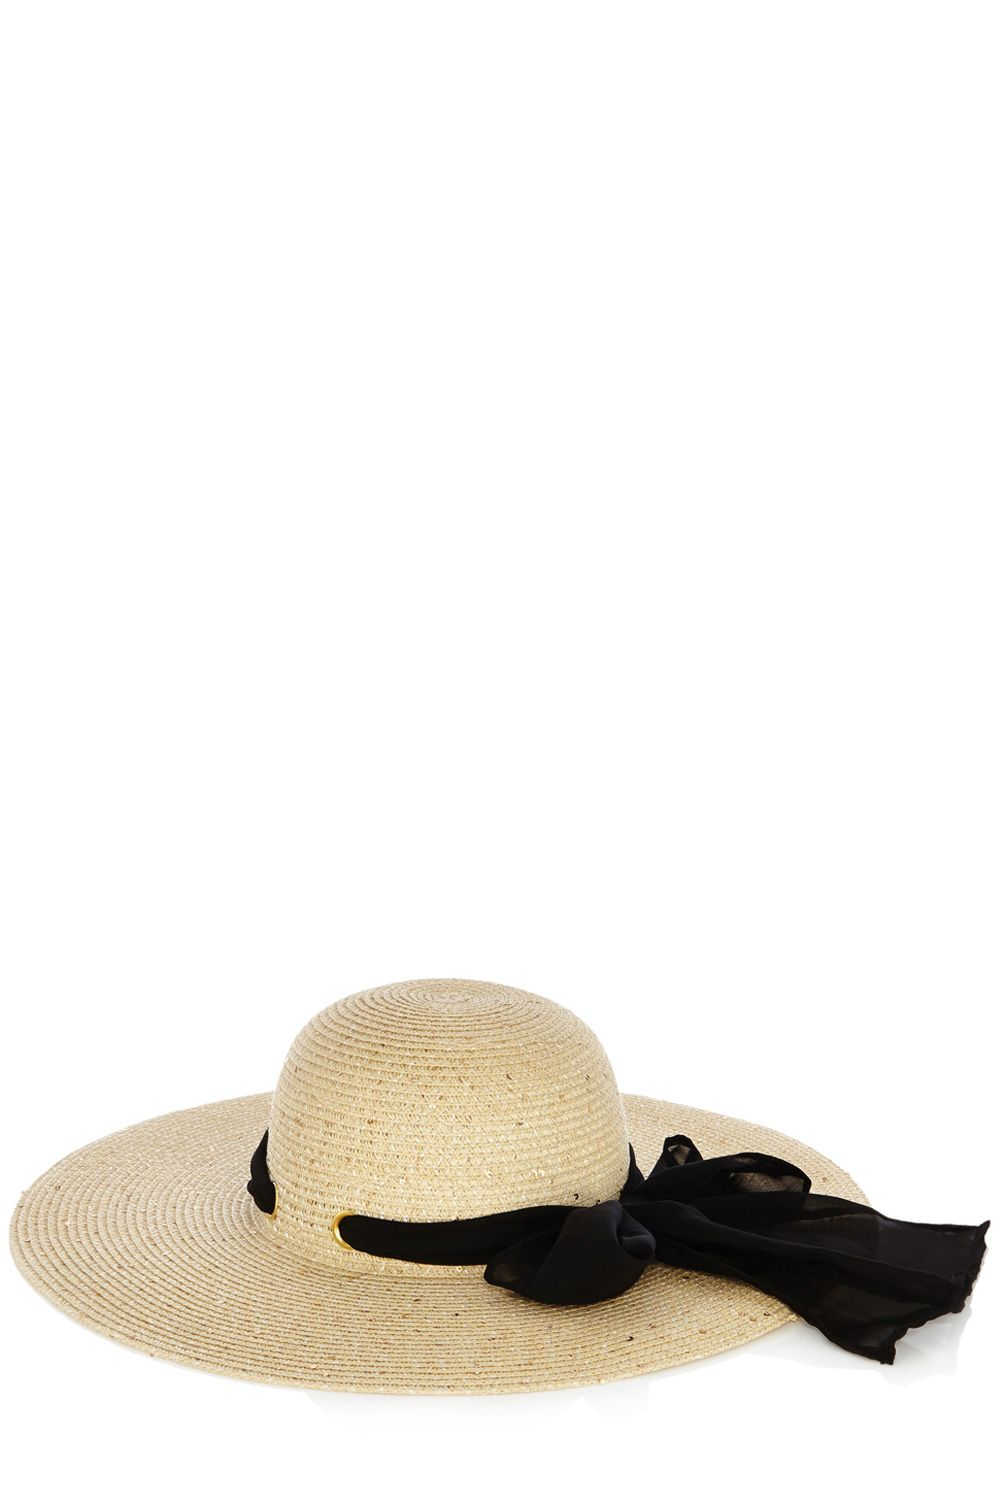 Sparkle floppy hat